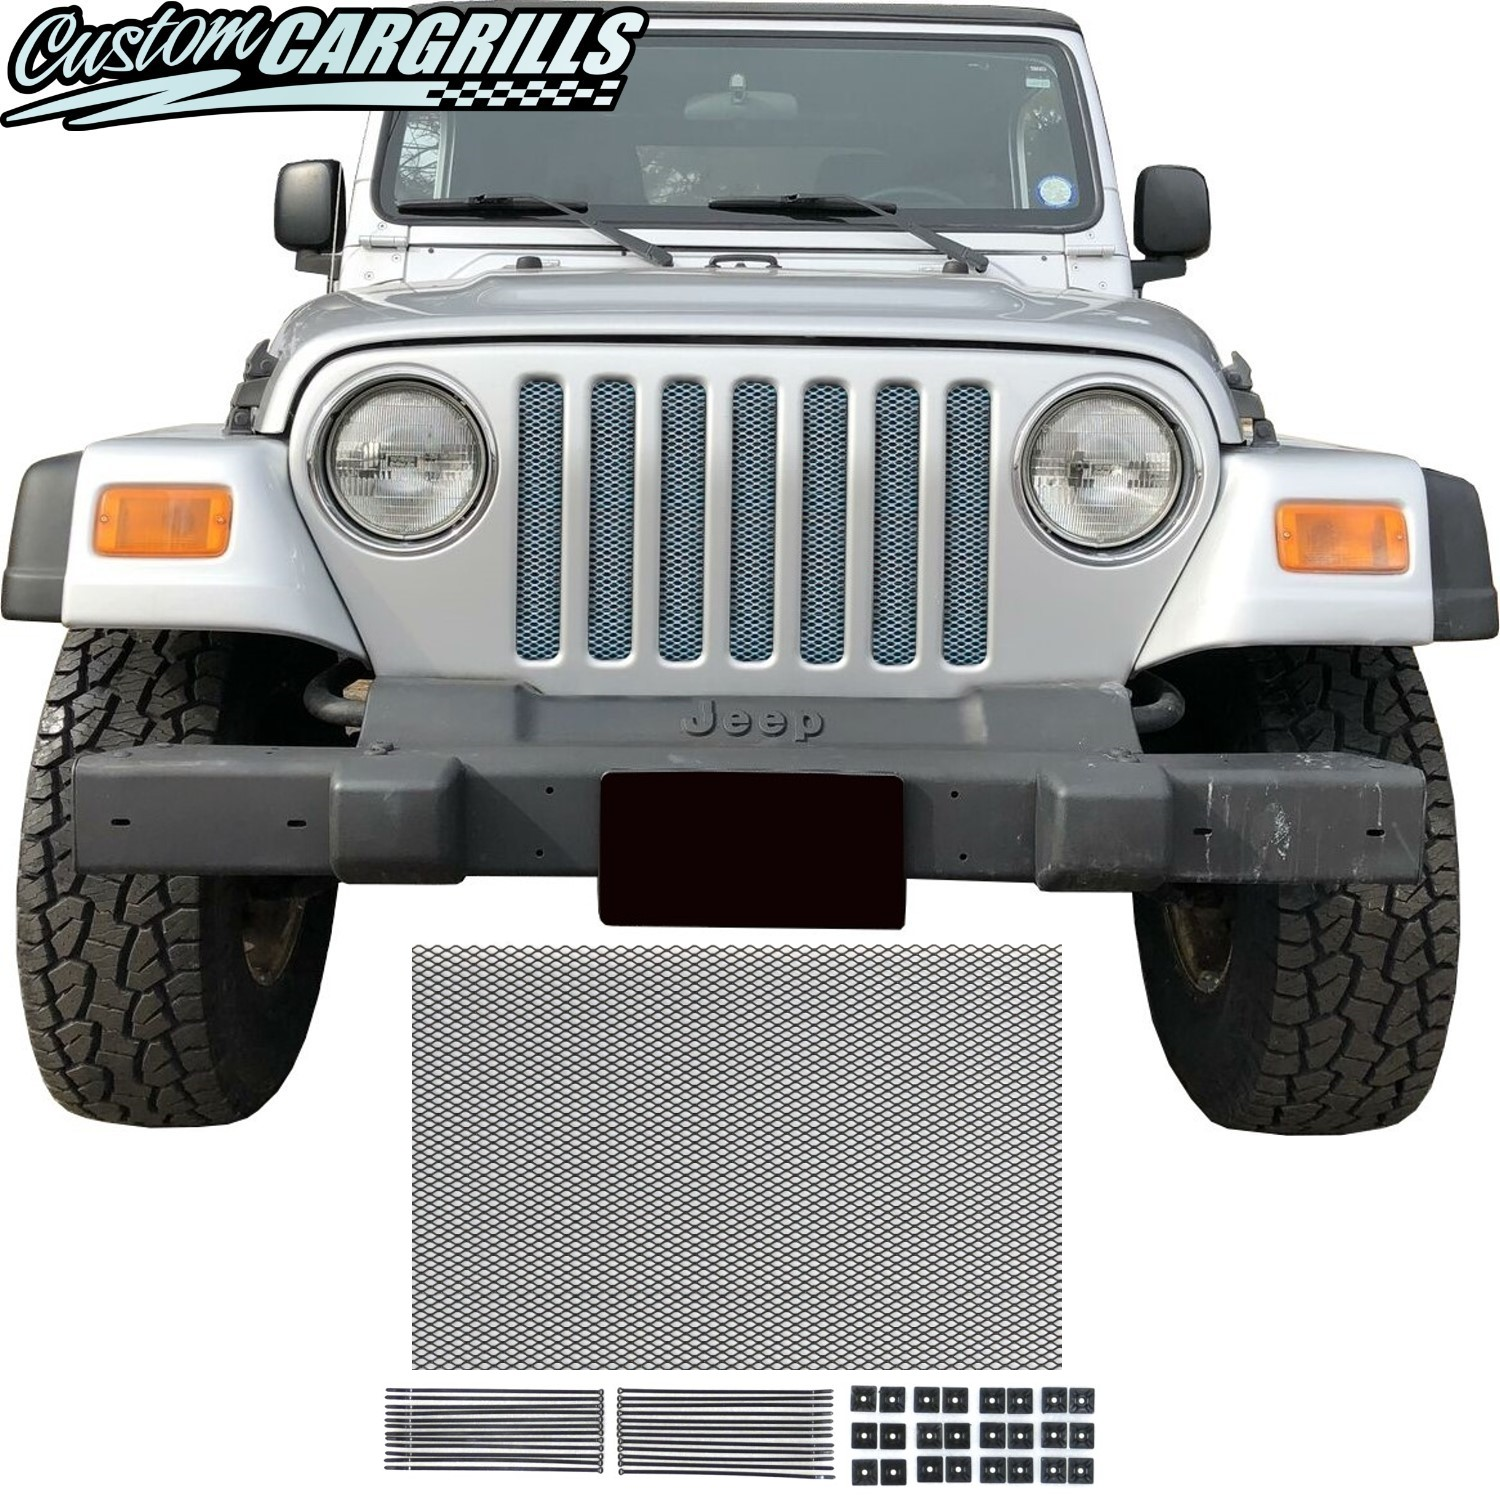 Mesh Grill Kit For 1997 - 2006 Jeep Wrangler TJ